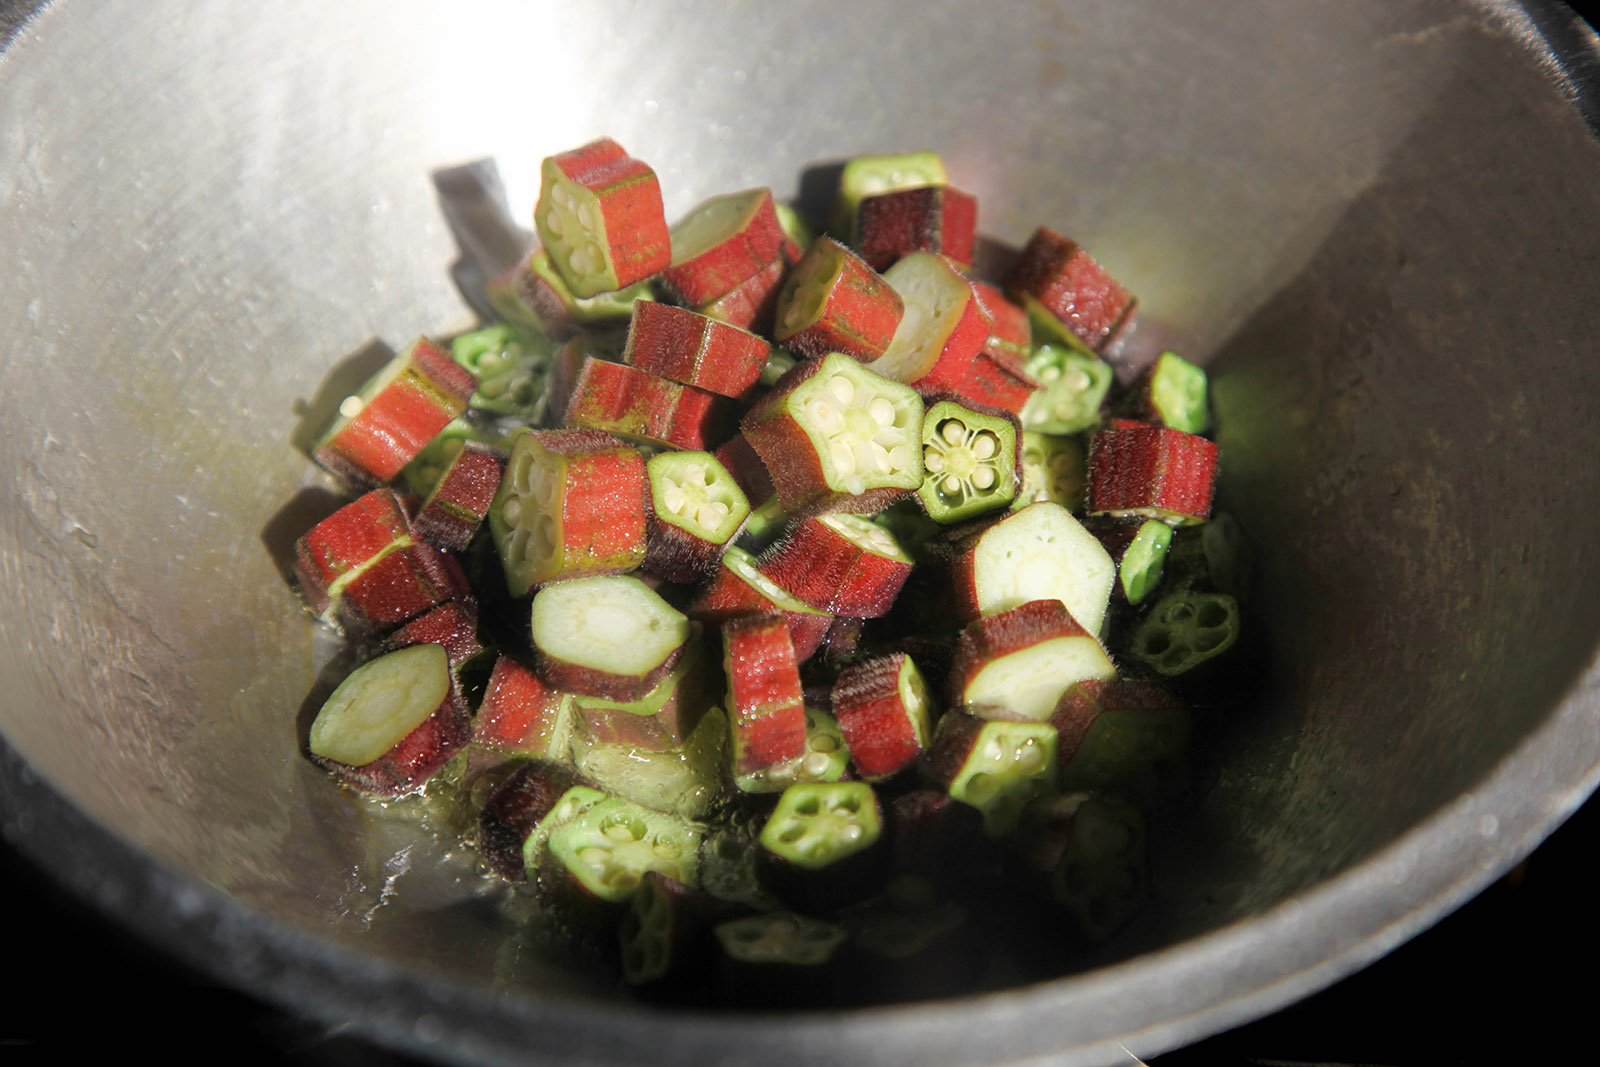 Frying okra in the wok